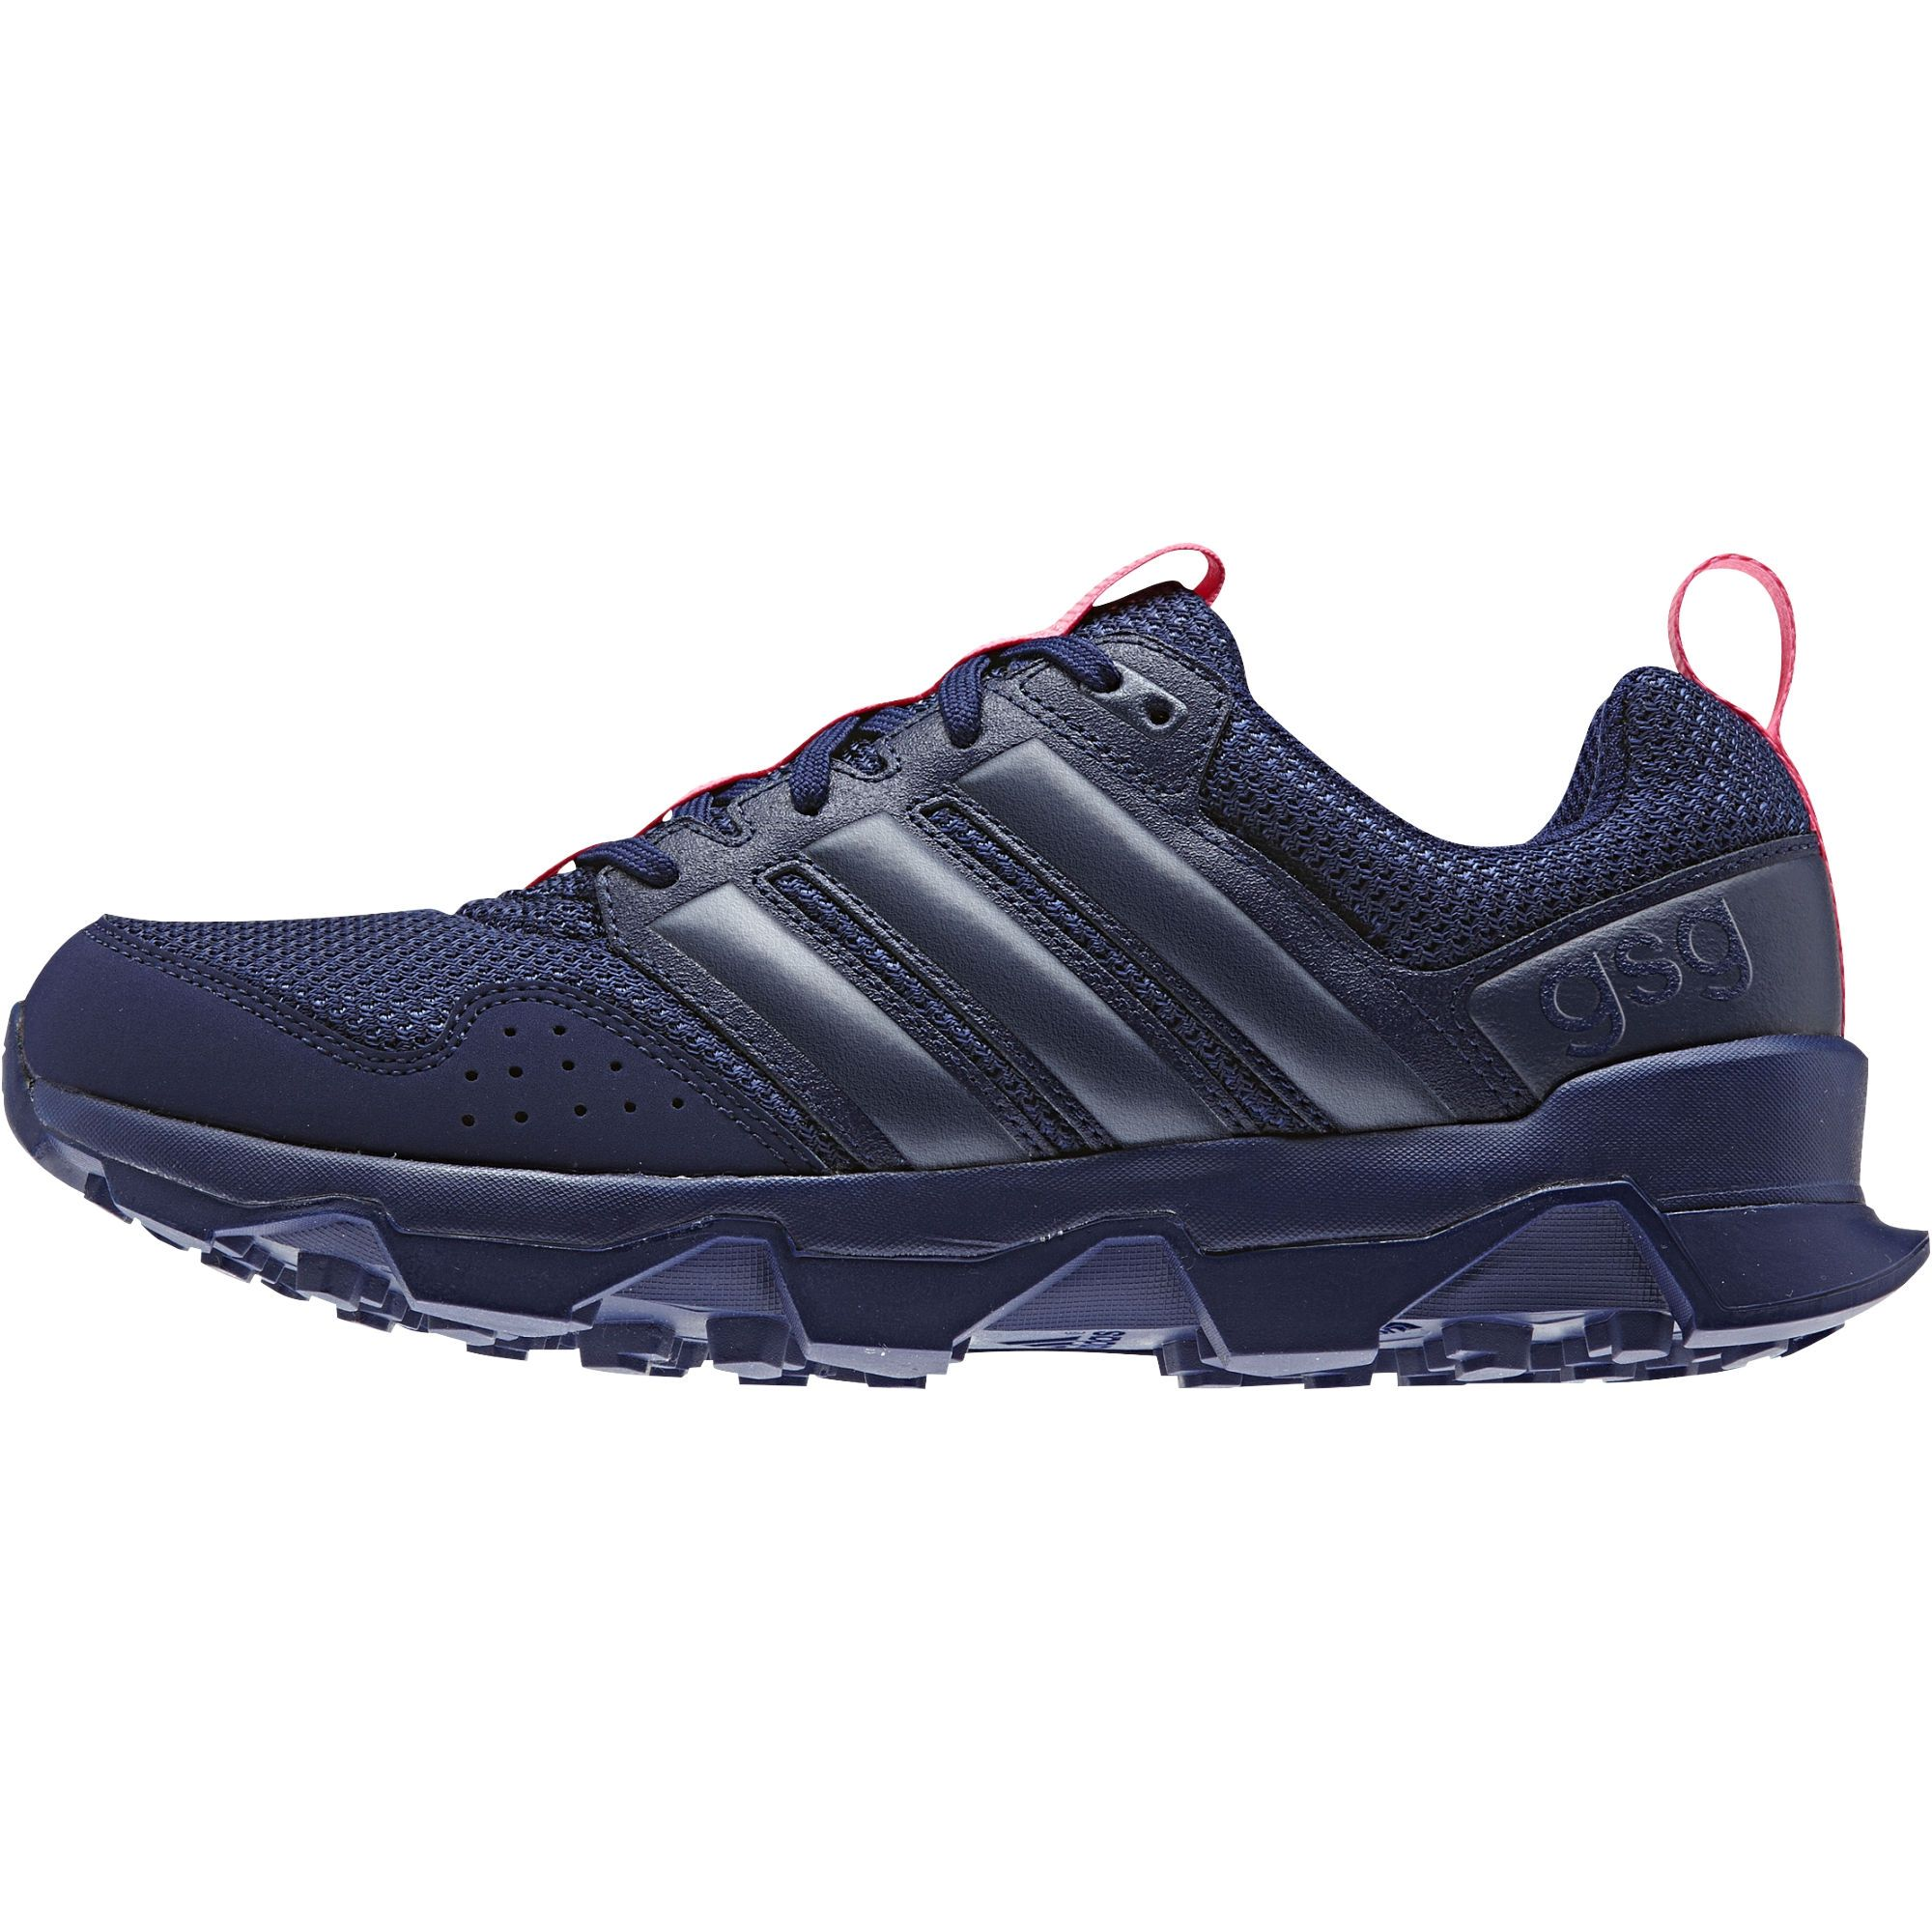 check out 94a6f 9ecb4 wiggle.com.au   Adidas Women s GSG9 TR Shoes - SS15   Offroad Running Shoes